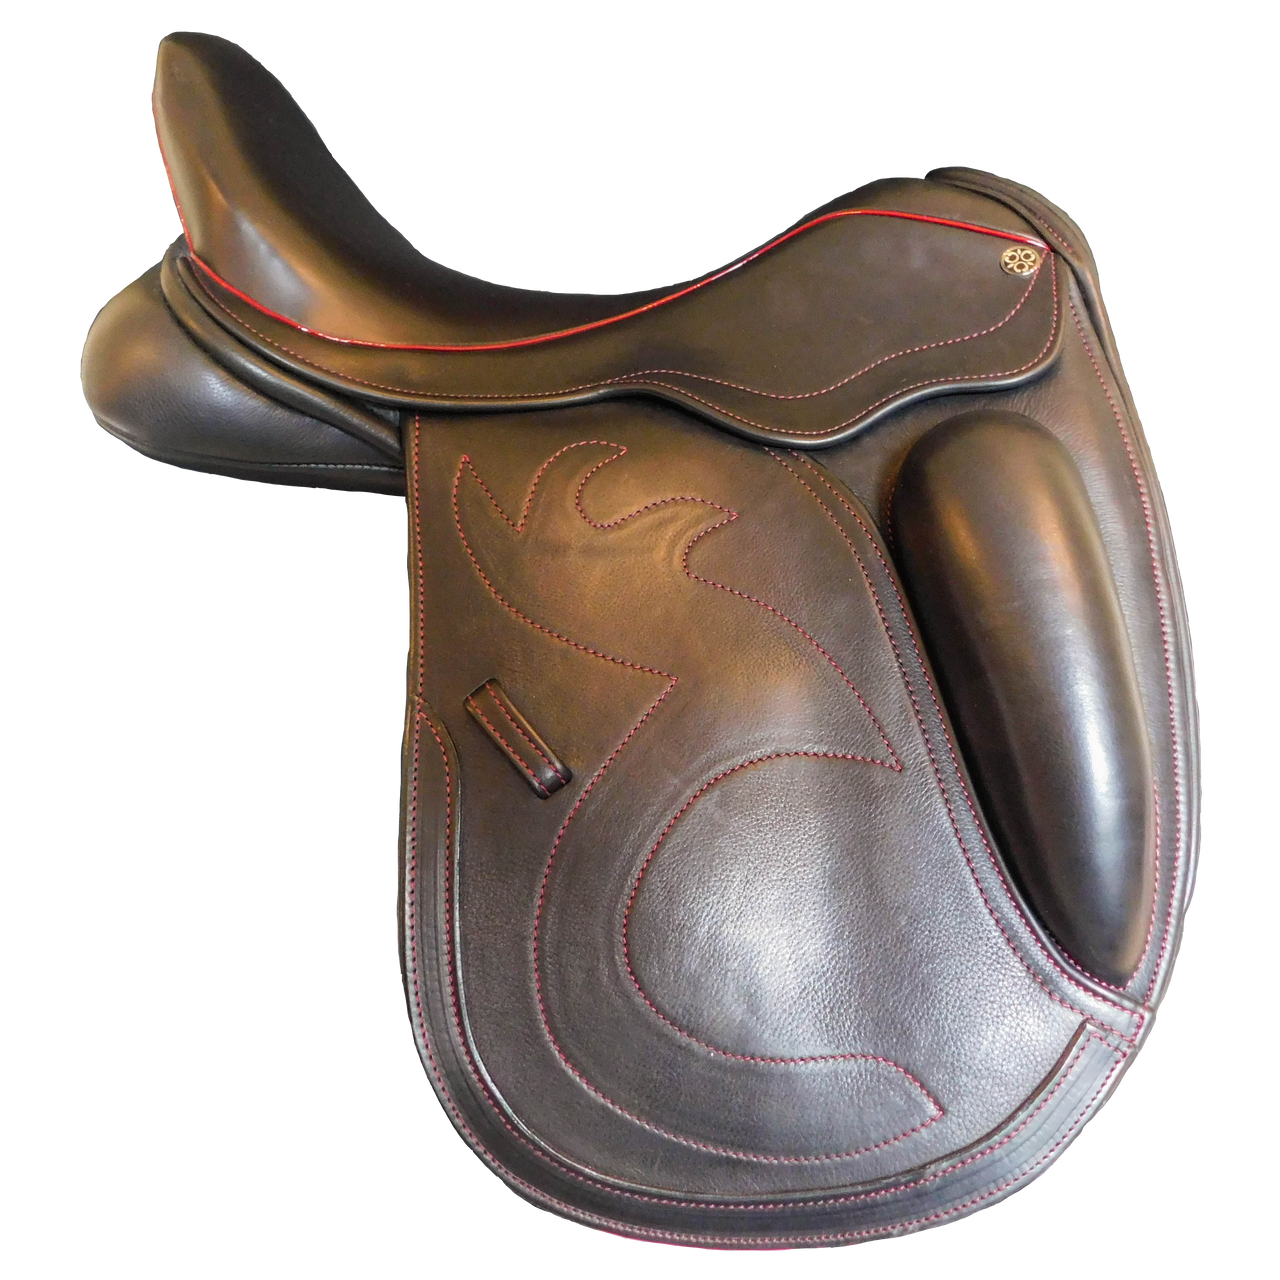 The Ethos Monoflap Dressage Saddle